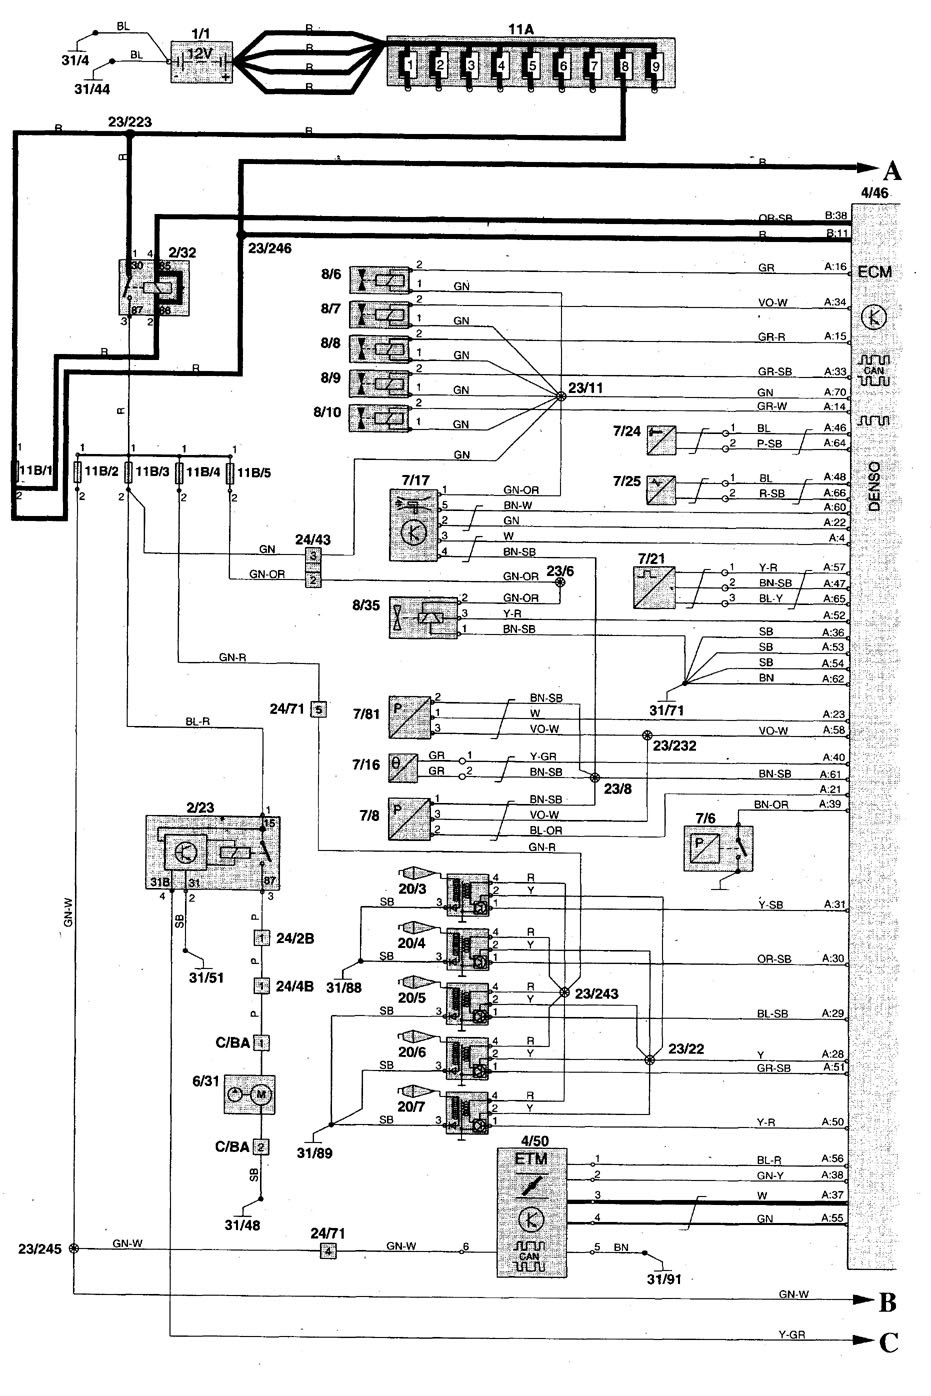 volvo c70 wiring diagram fuel pump 3 1999 volvo c70 (1999 2004) wiring diagrams fuel pump carknowledge c70 wiring diagram at bakdesigns.co